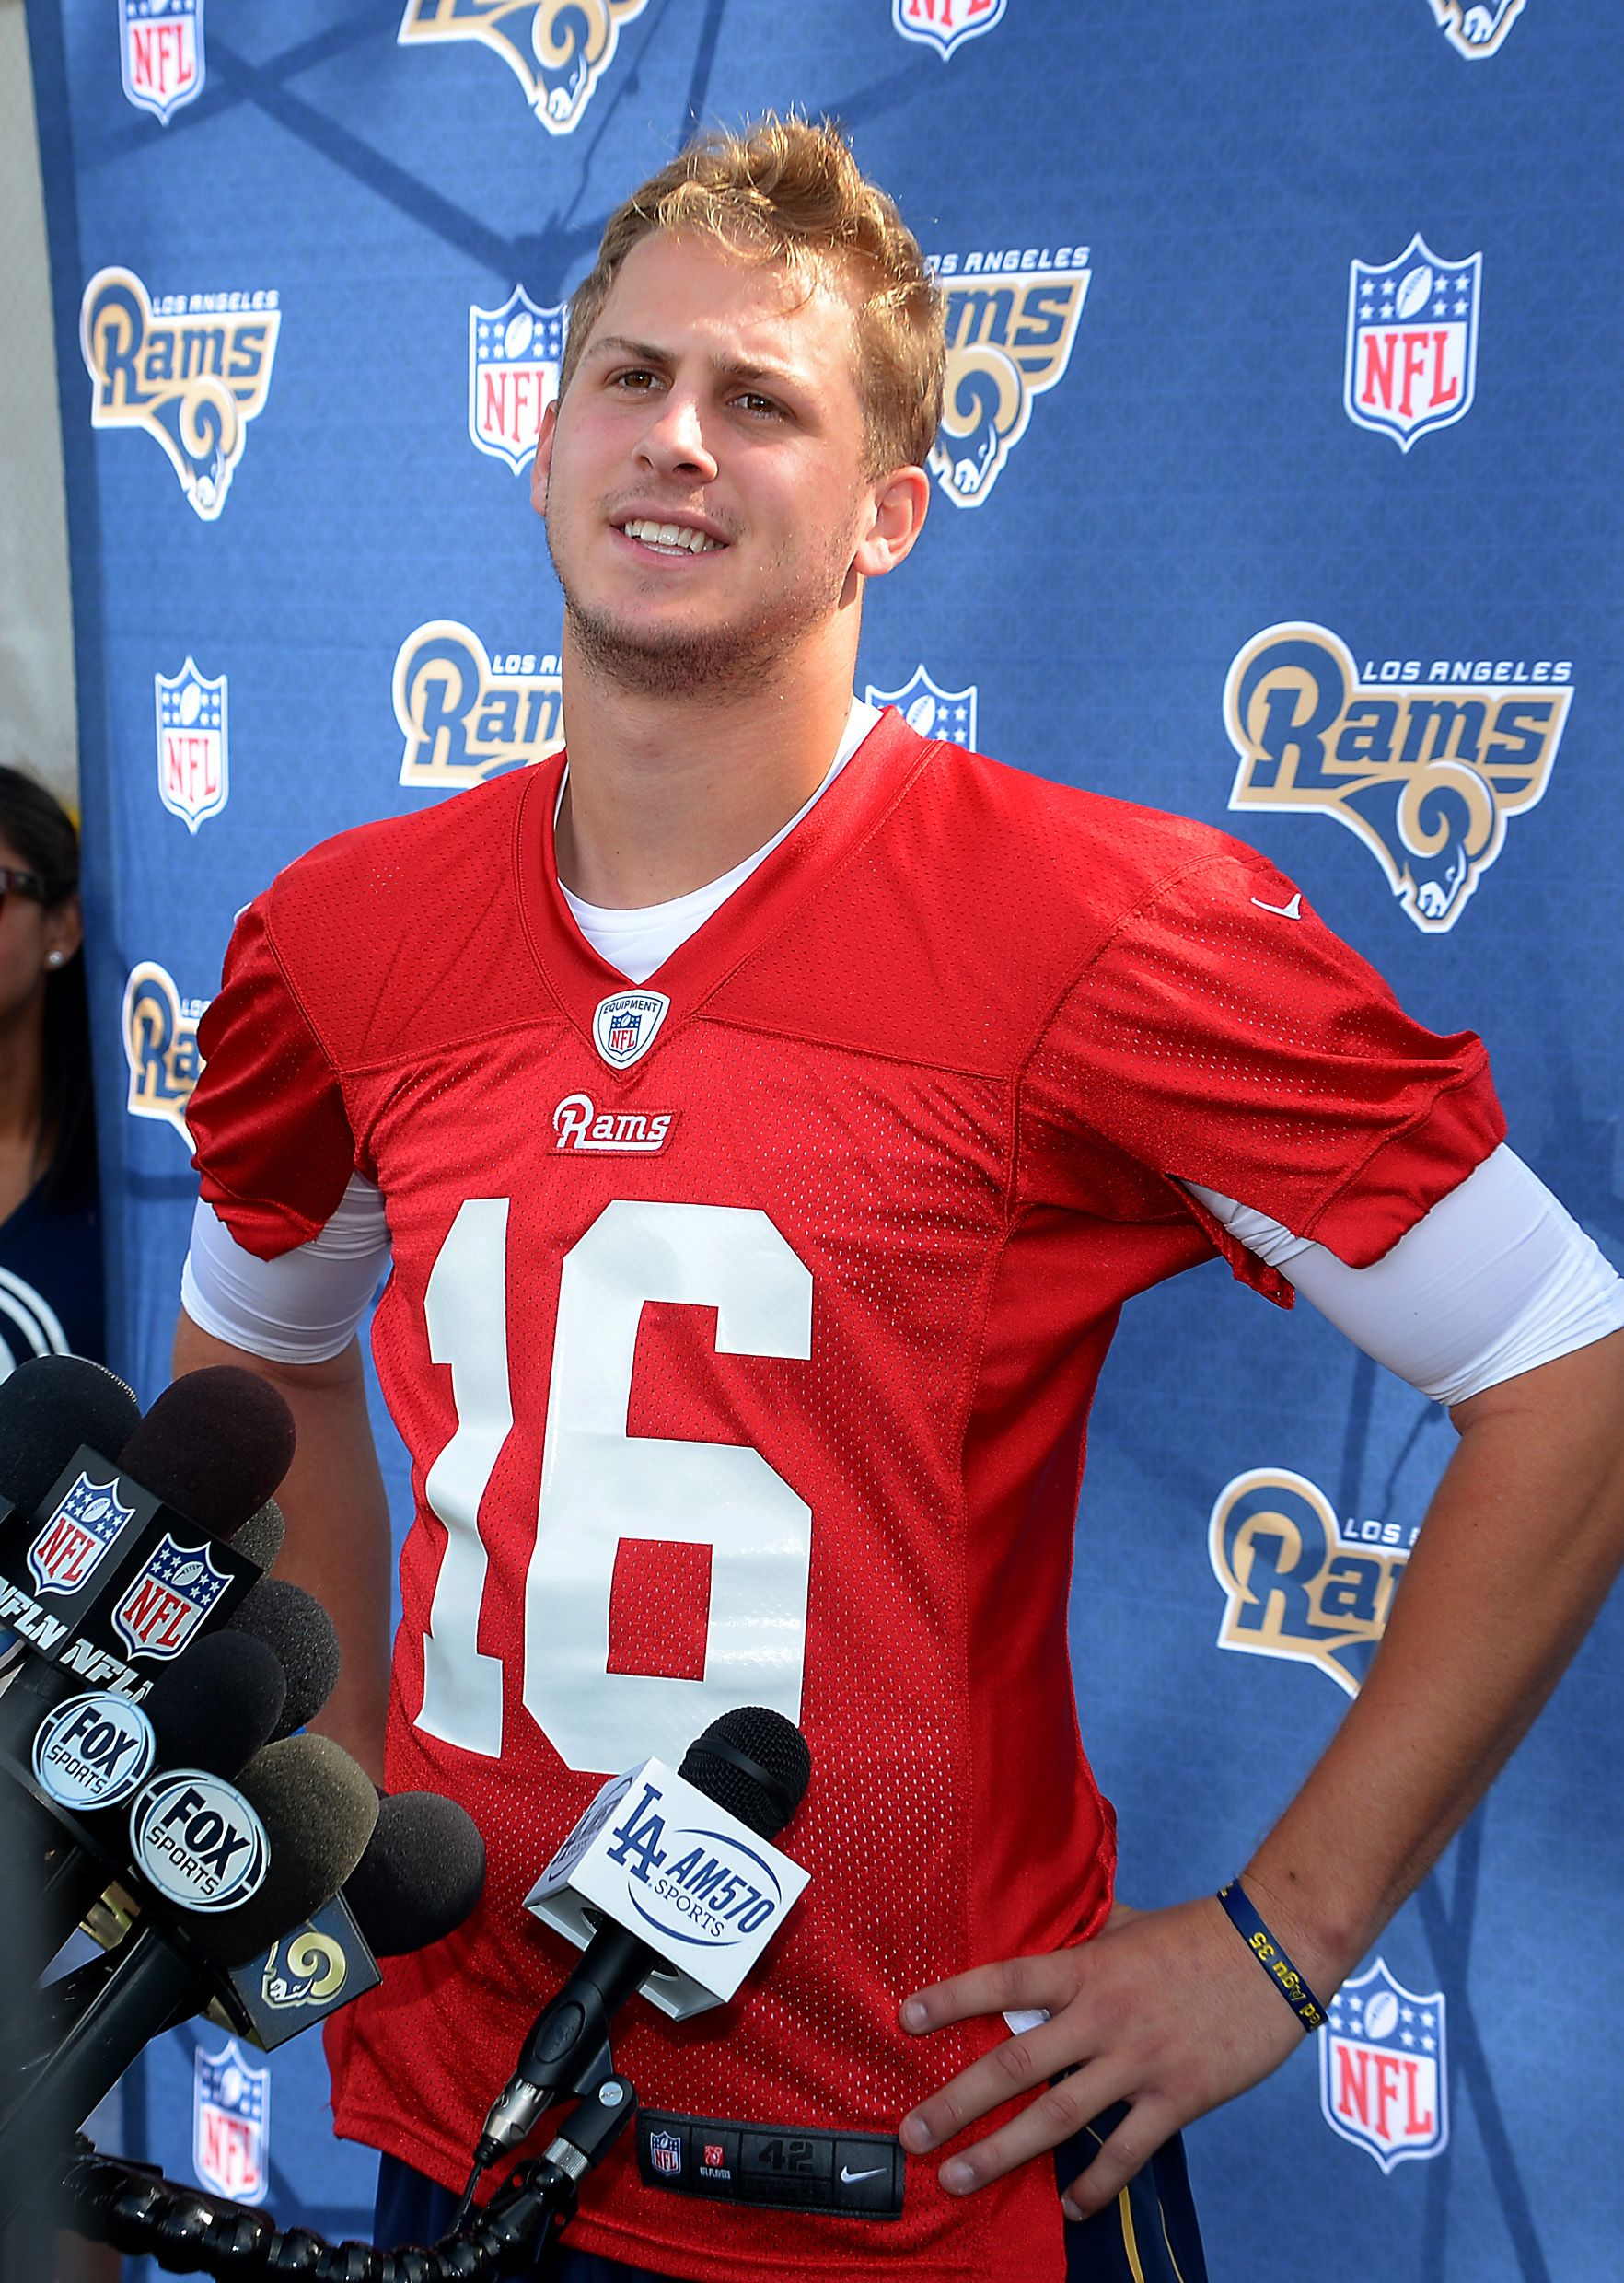 May 6 2016 Oxnard Ca Usa Los Angeles Rams Quarterback Jared Goff 16 Talks To The Media After The Day S Rookie Minica Jared Goff Blonde Guys Sports Coach